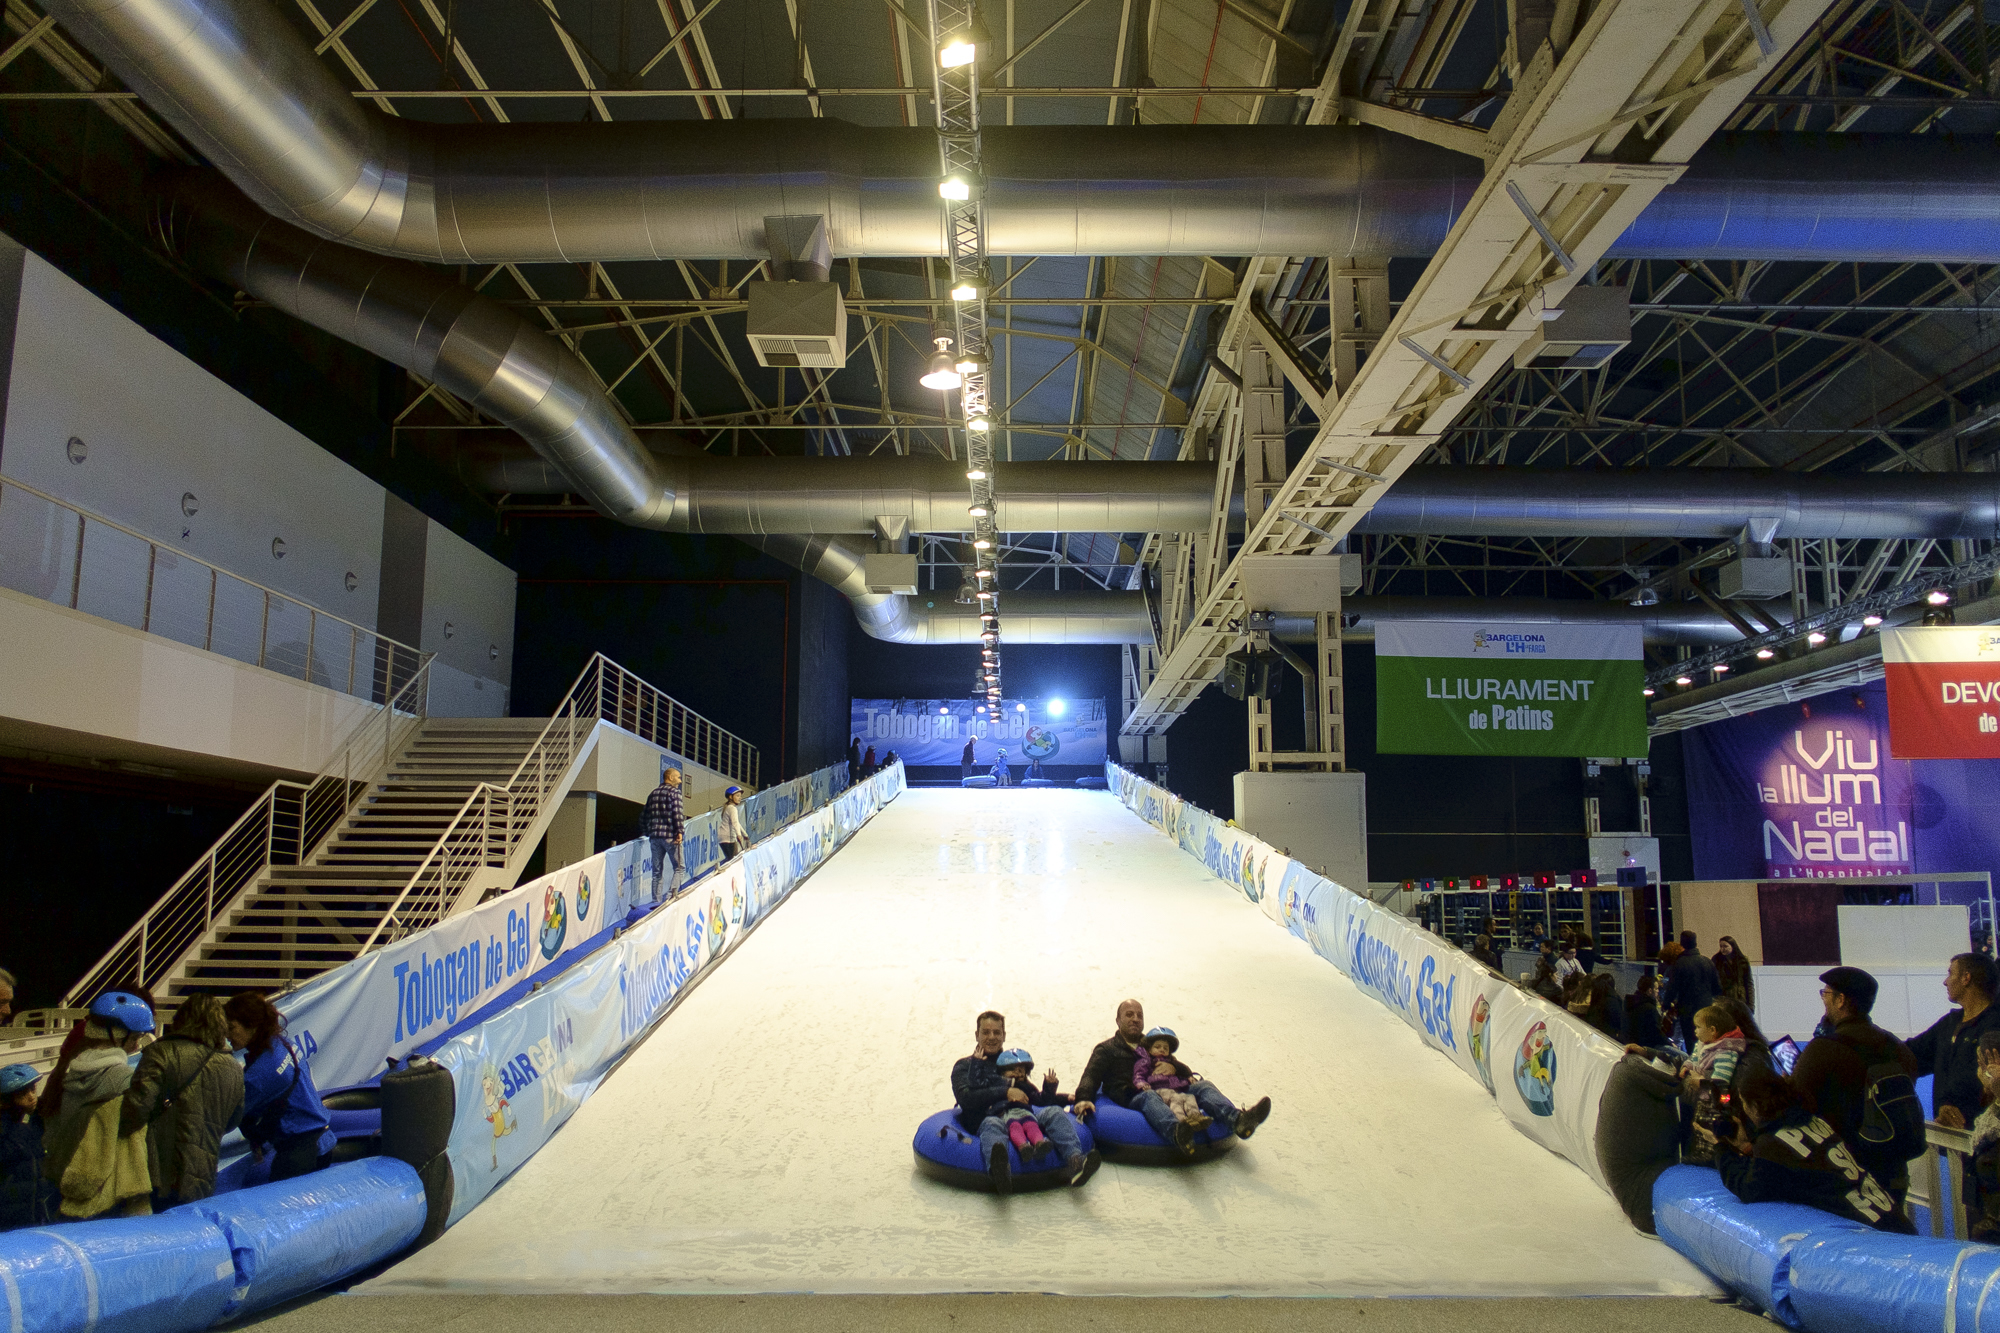 Ice-skating rink (and slide!)